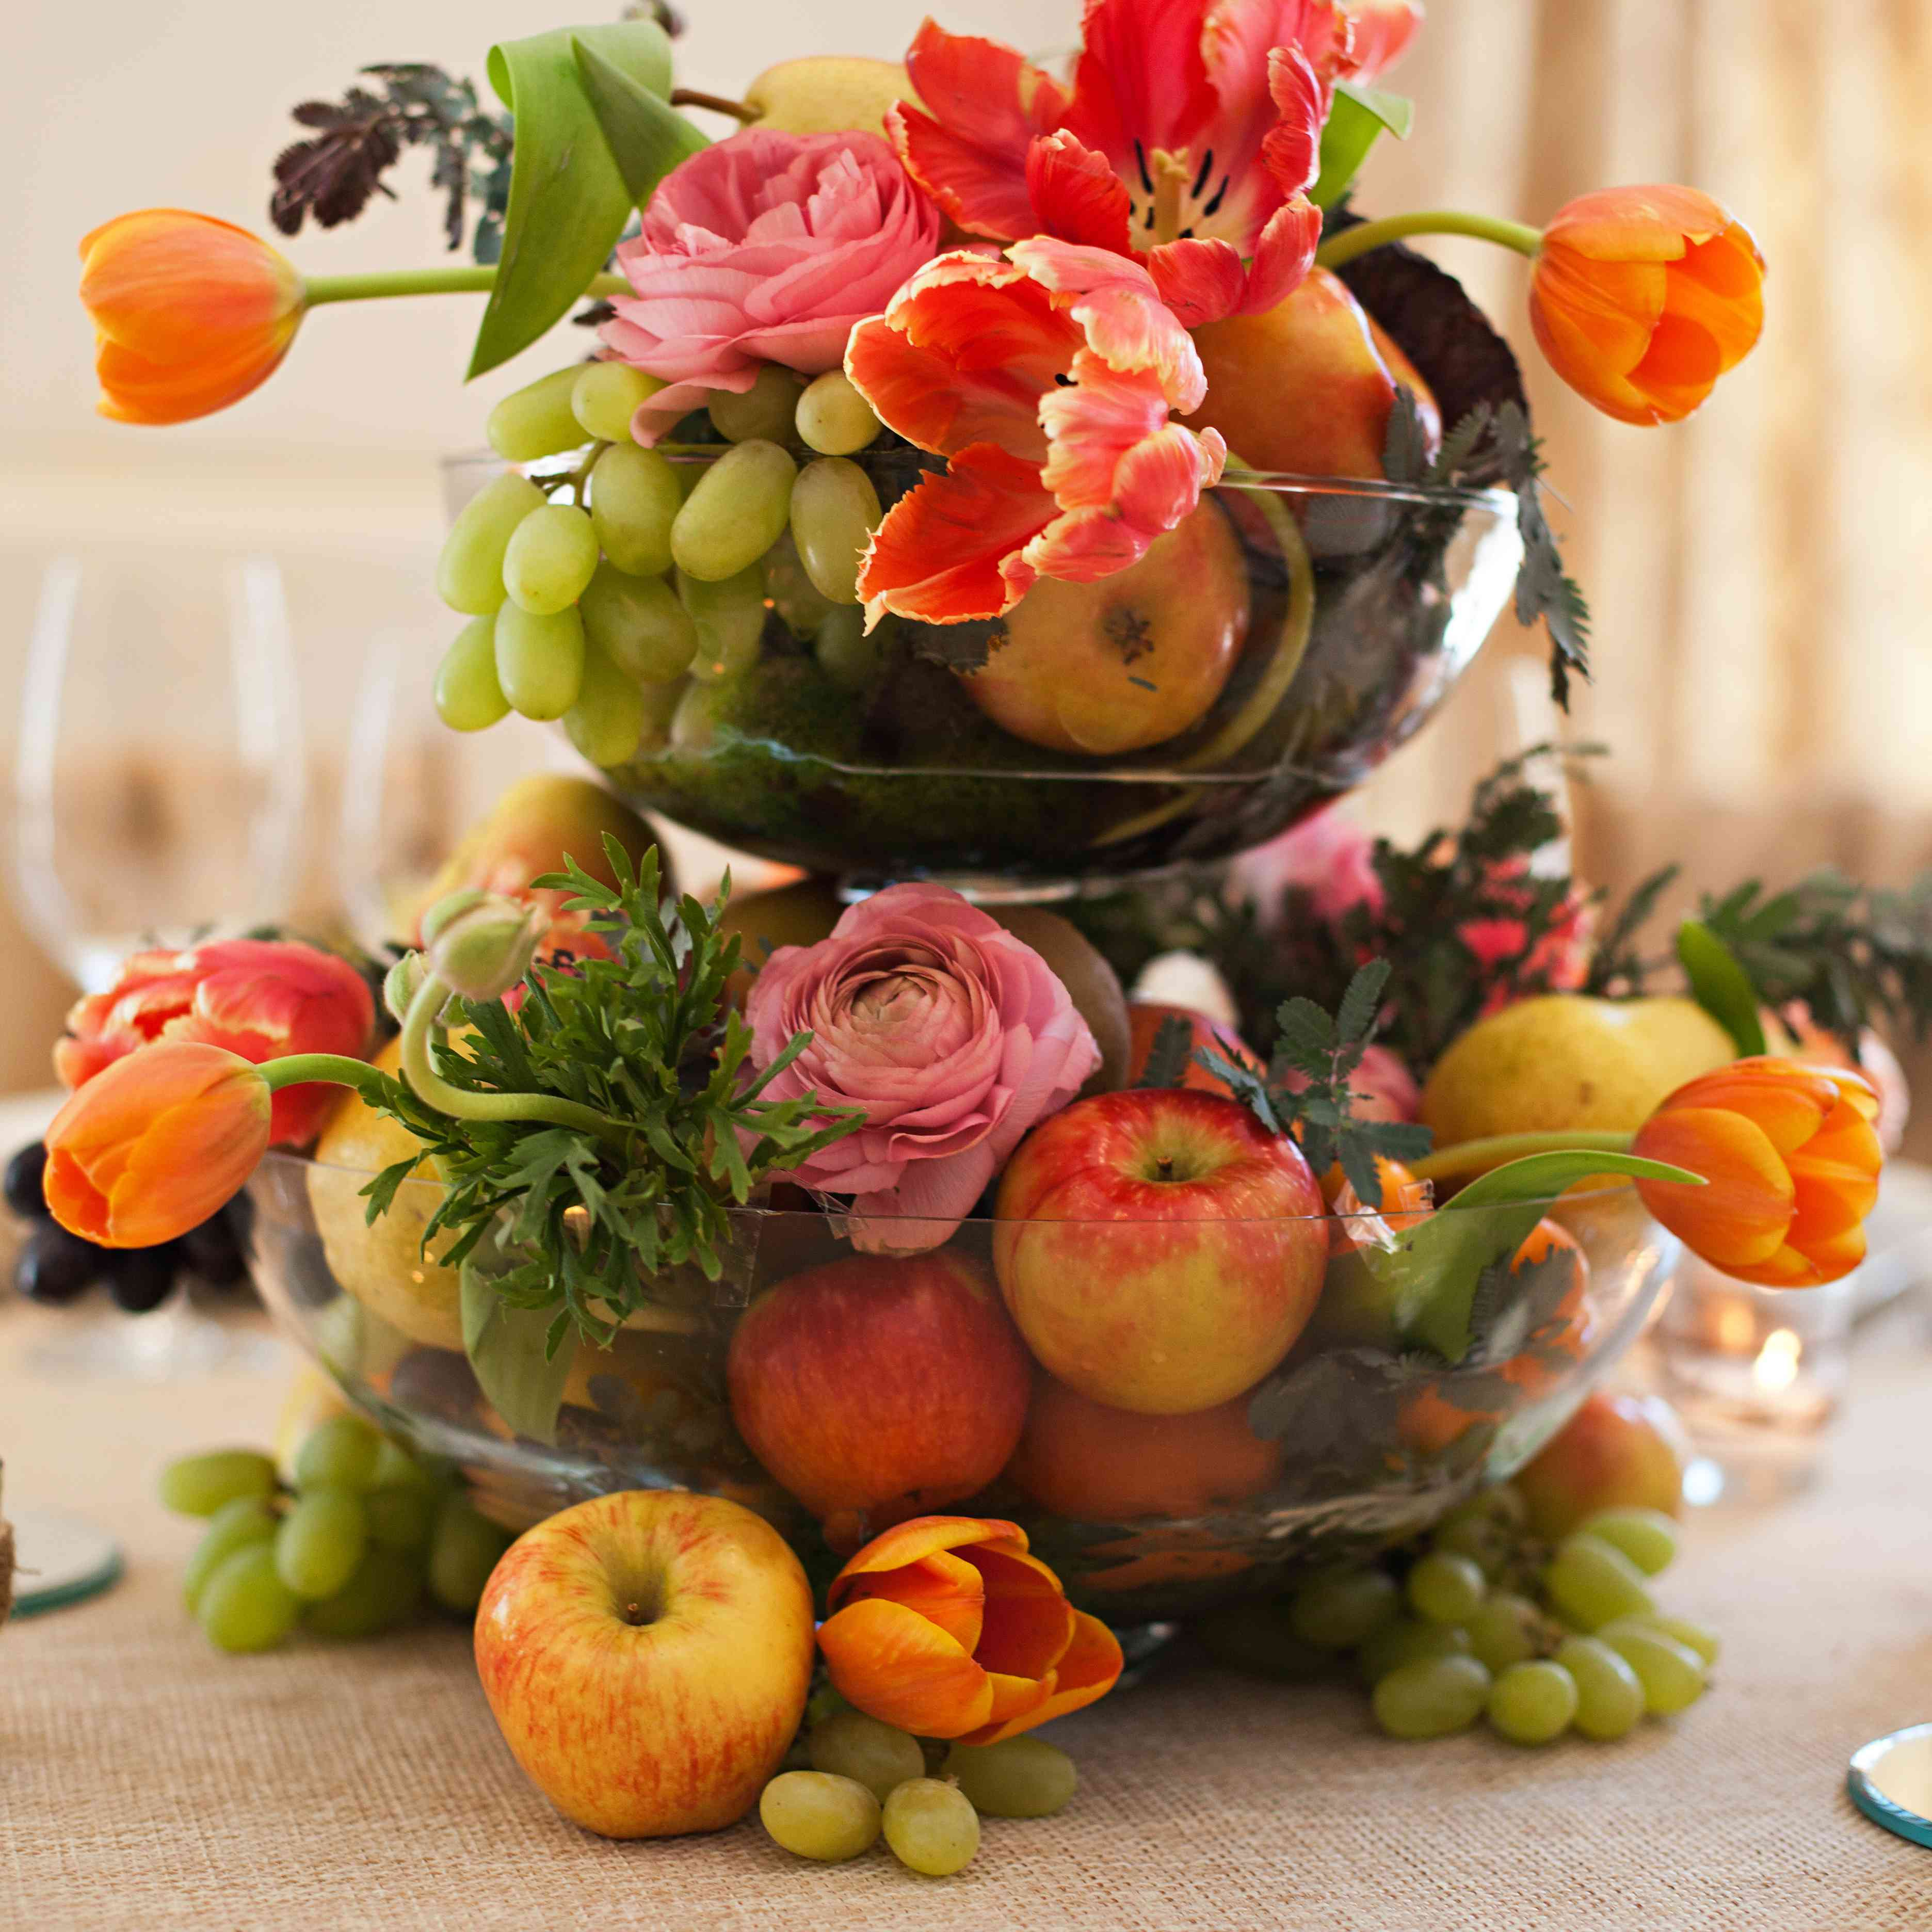 Centerpiece using florals, grapes, and apples